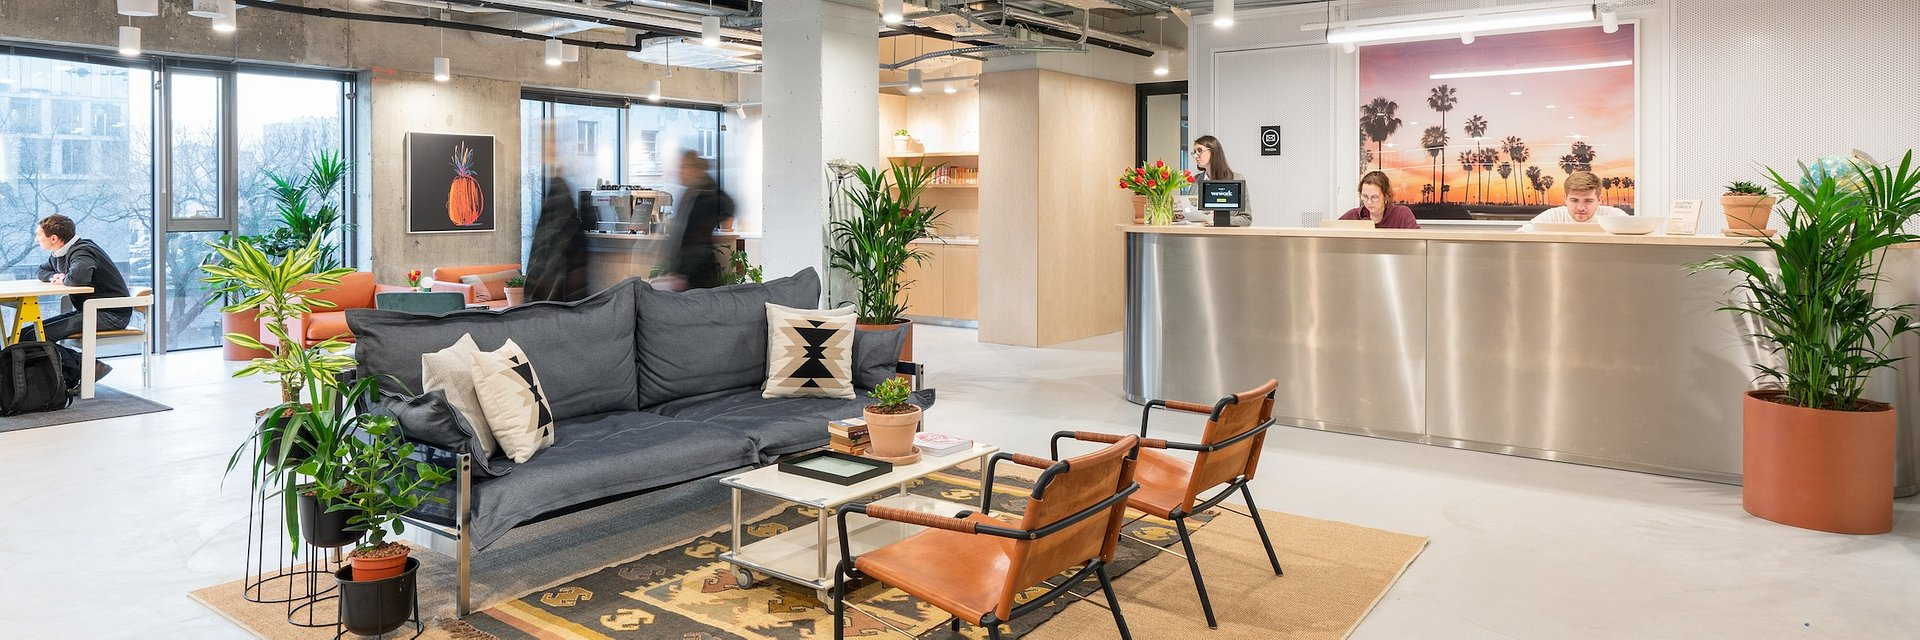 Browary Warszawskie to become one of the largest shared workspaces in Poland